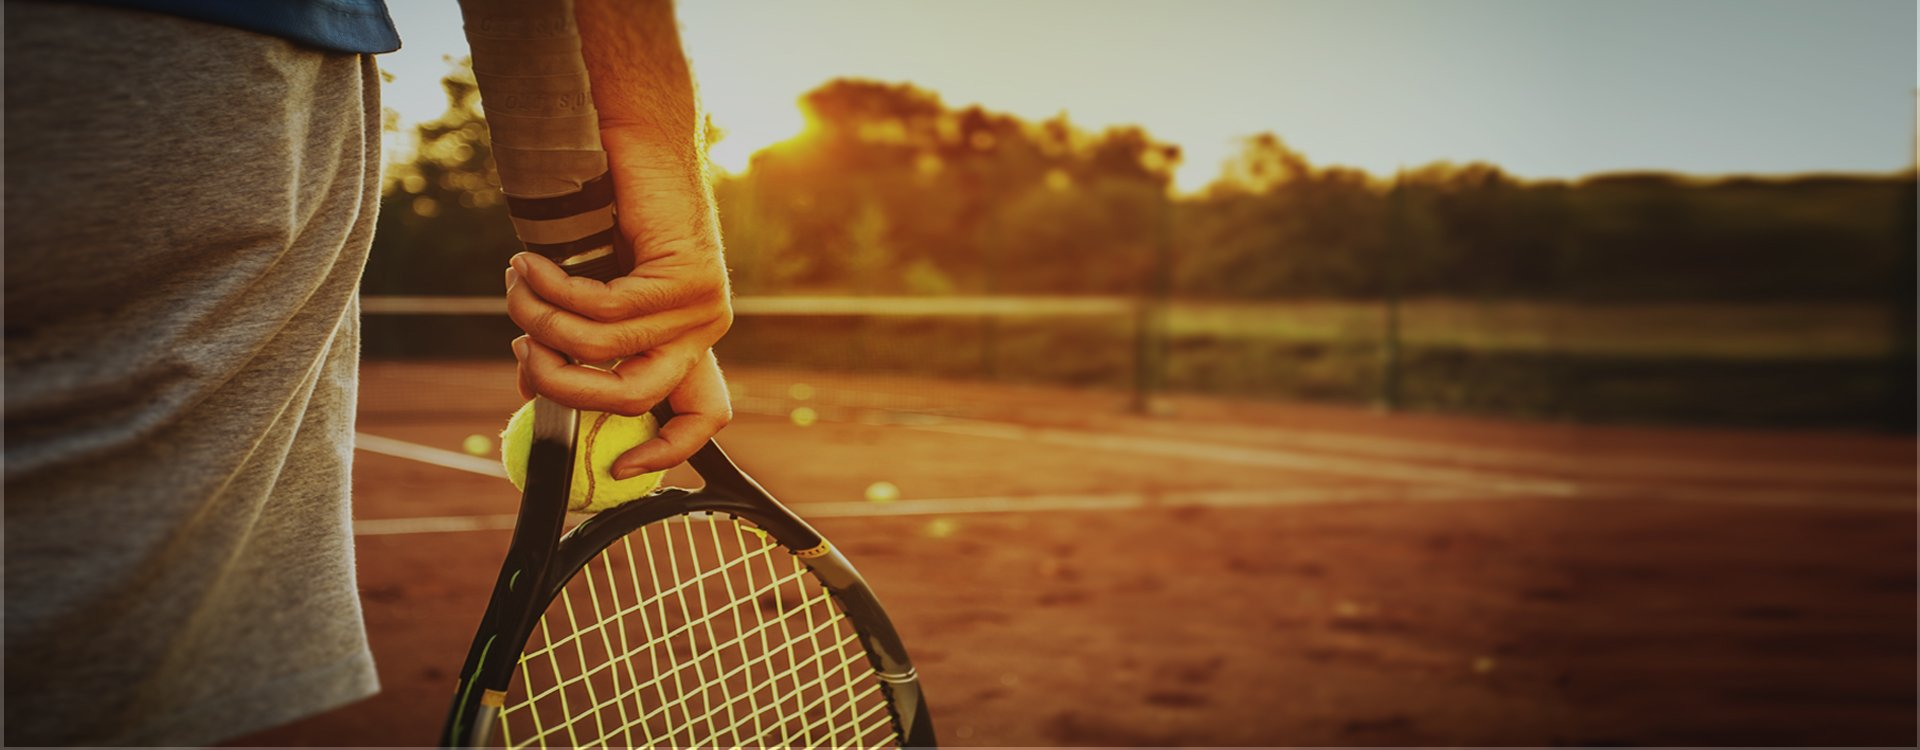 Tennis Techniques to Improve Your Game